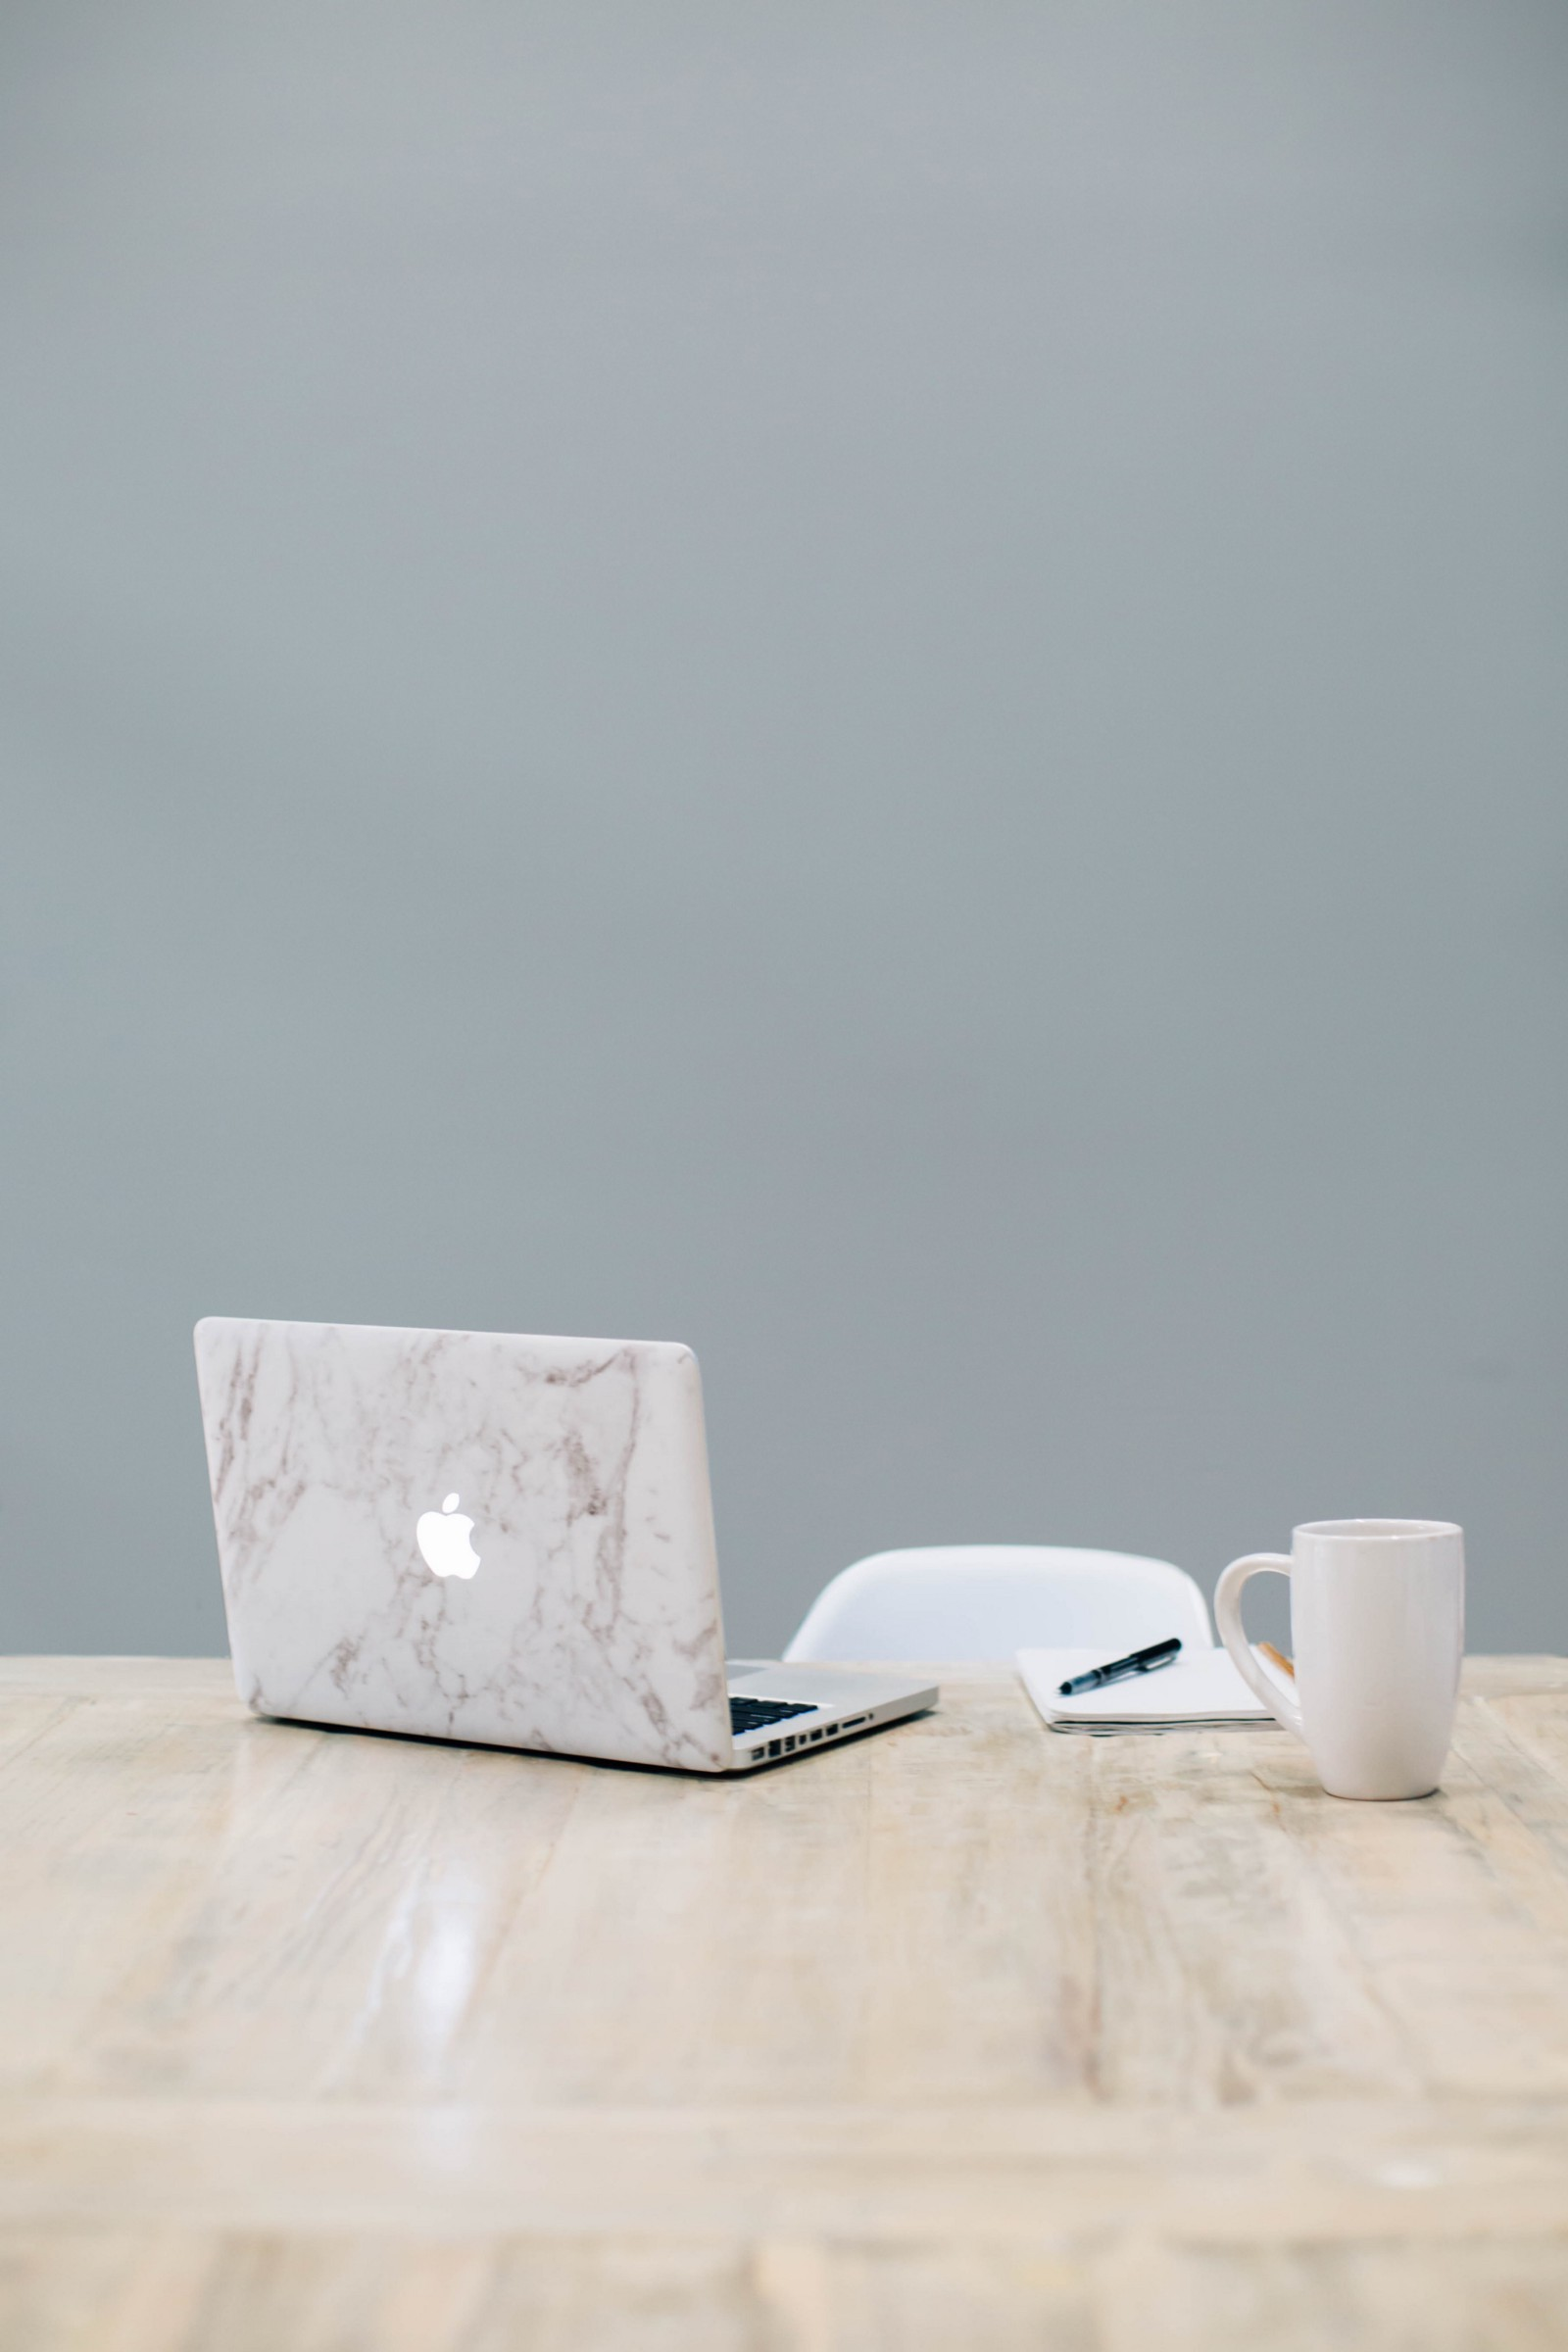 Macbook On Table Near Mug By Rachel Moenning Unsplash